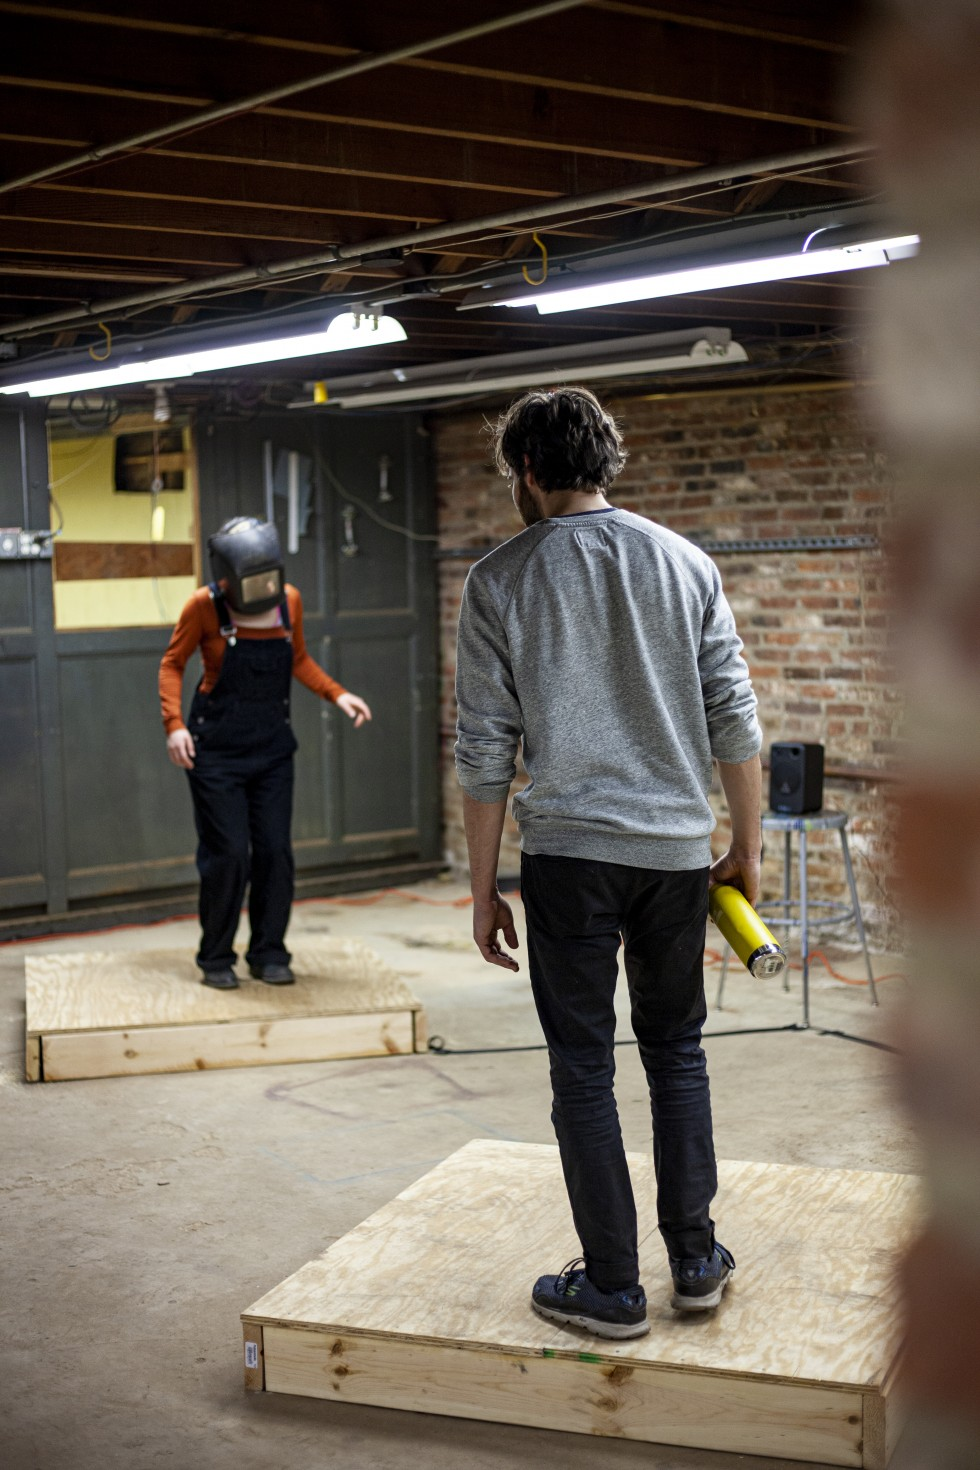 2 people in a room, both standing on a different pallet